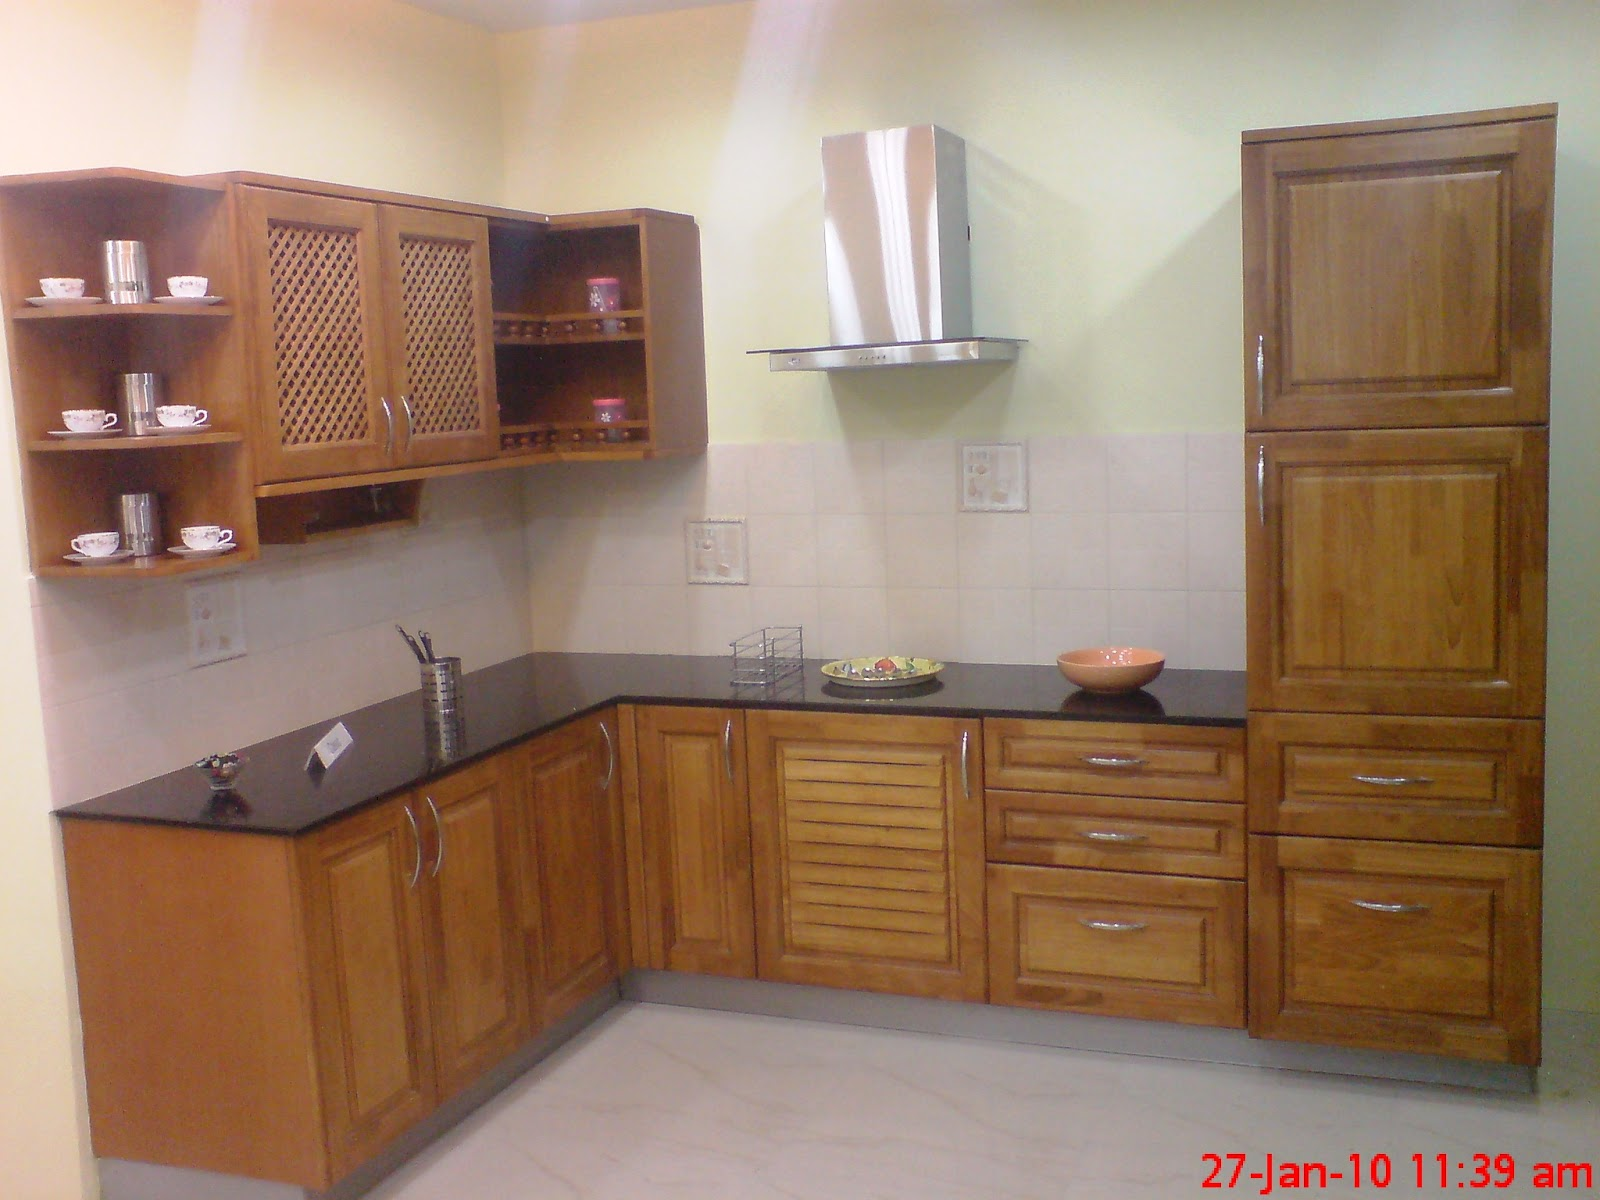 Sai decors photos interior painting contractors in chennai image gallery for interior - Kitchen style for small space paint ...